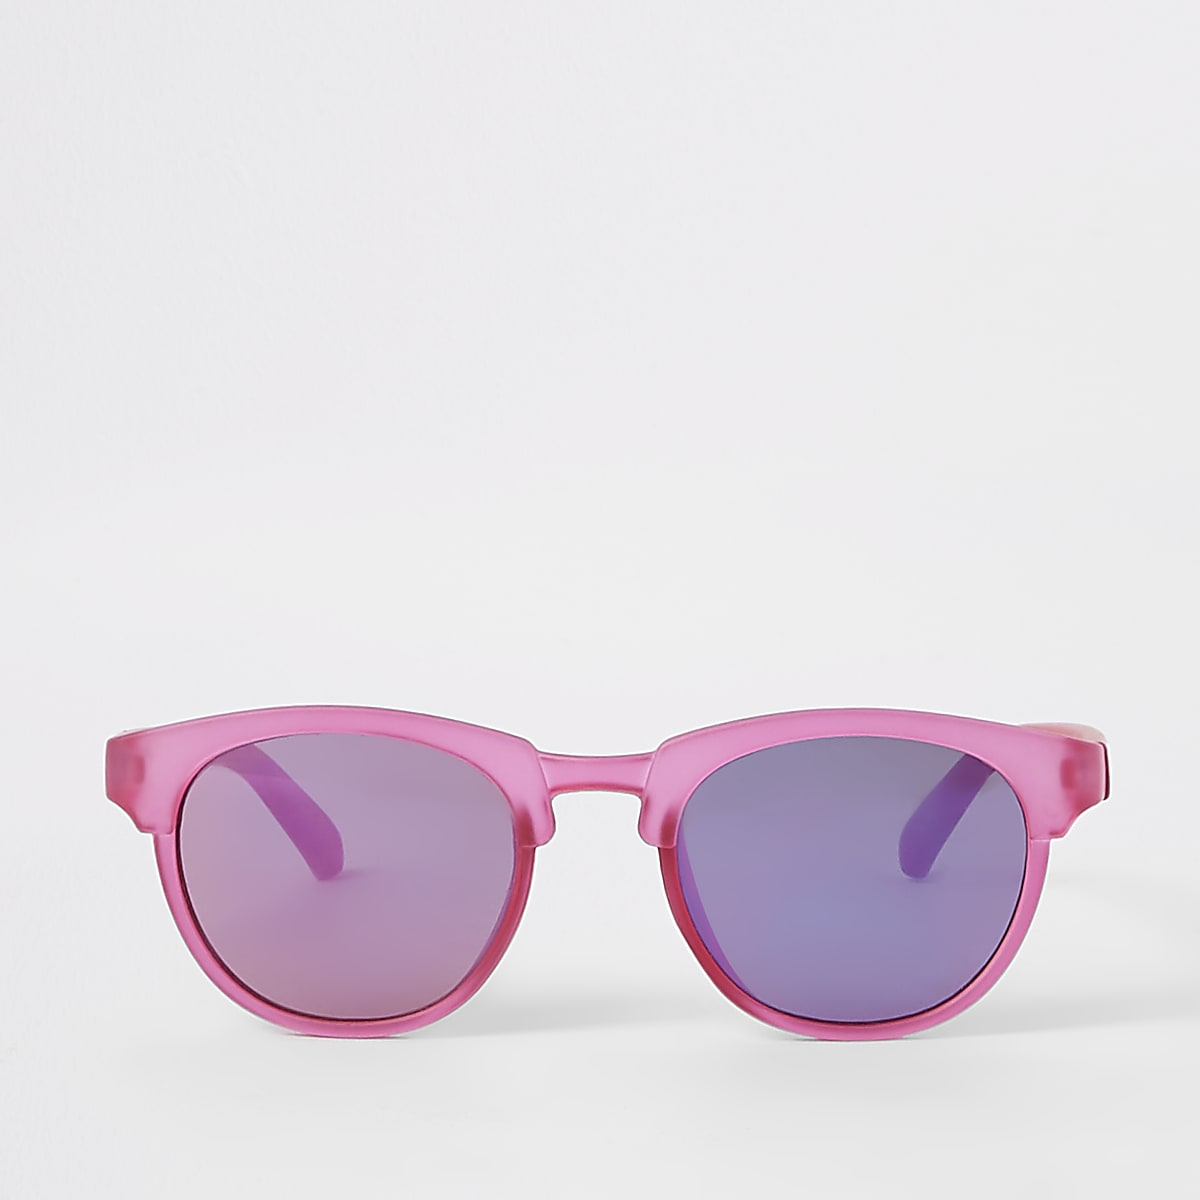 Mini girls bright pink sunglasses